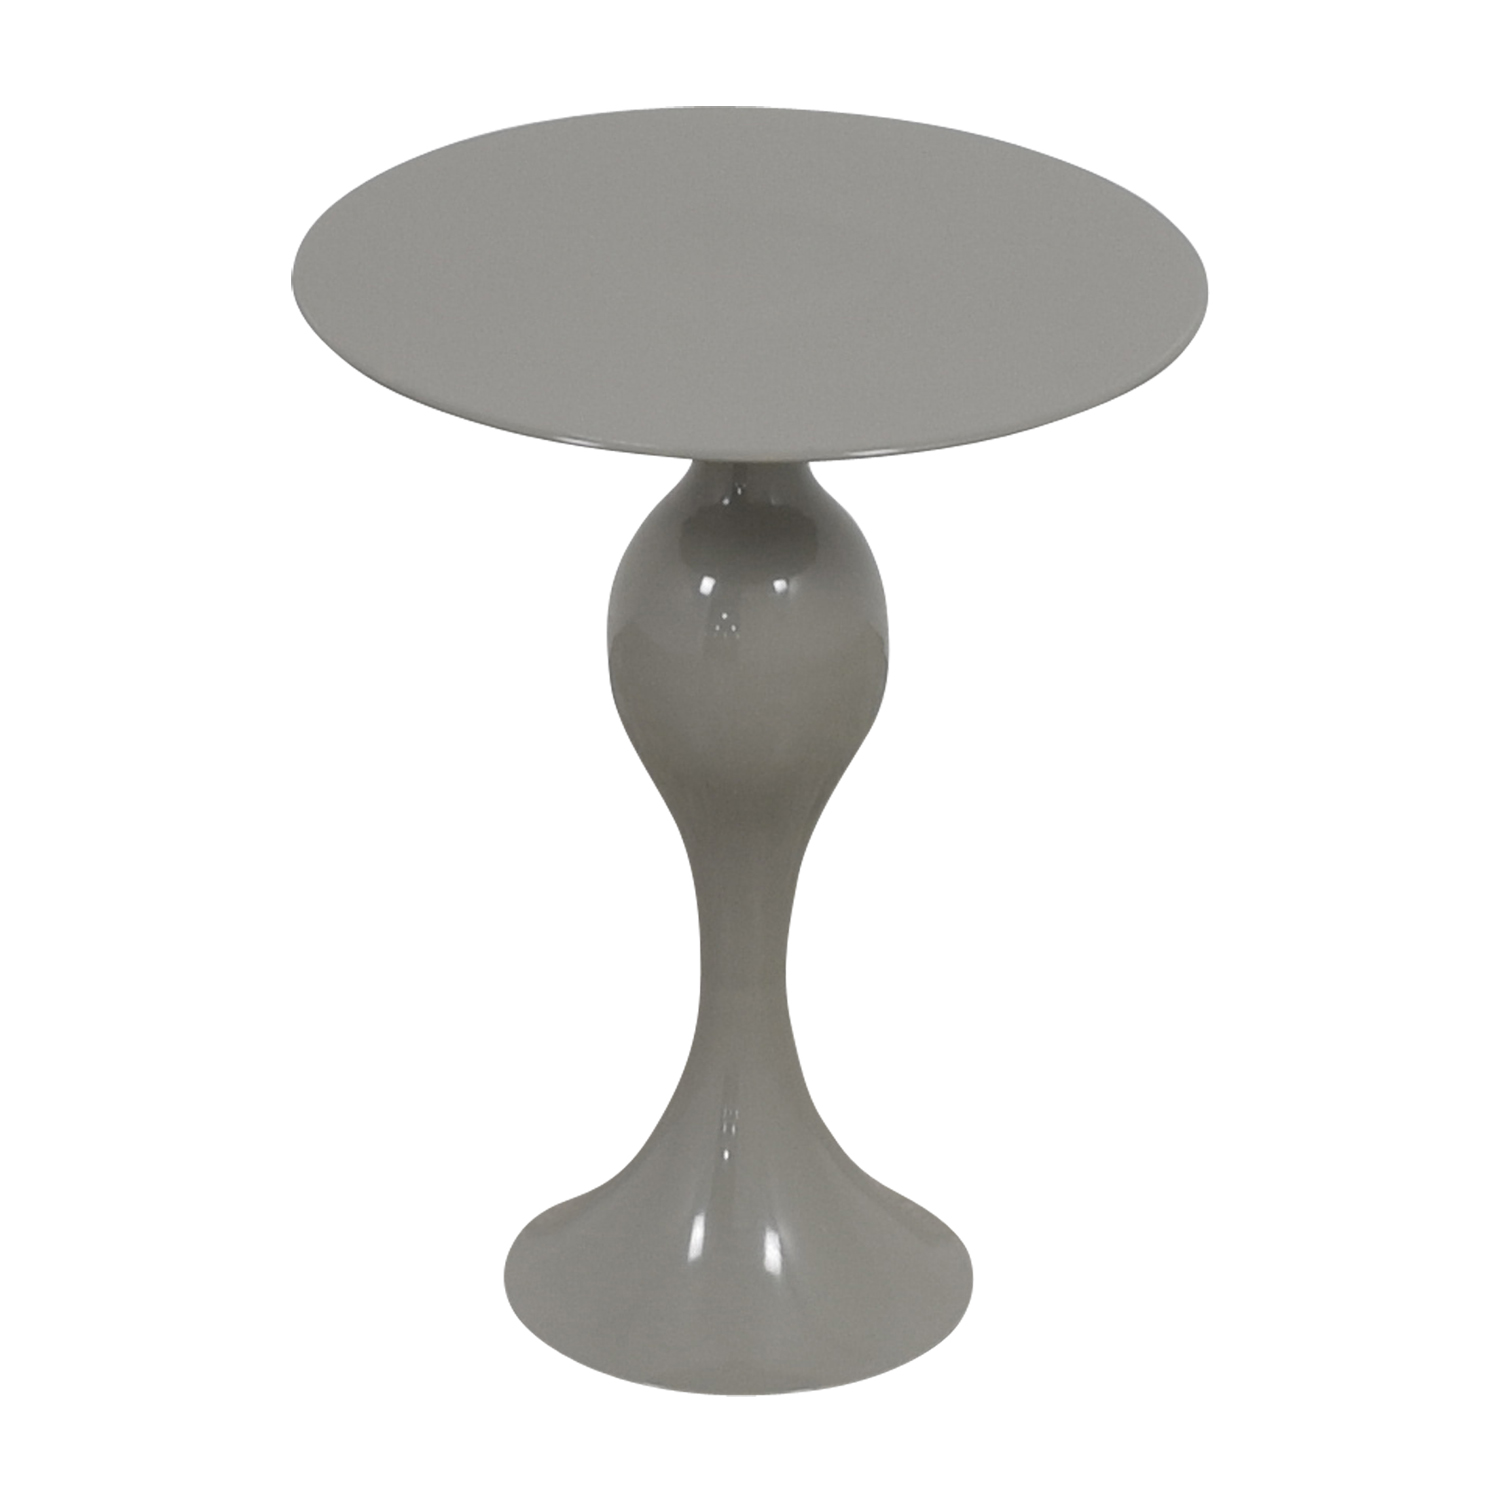 West Elm West Elm Gray Round End Table second hand